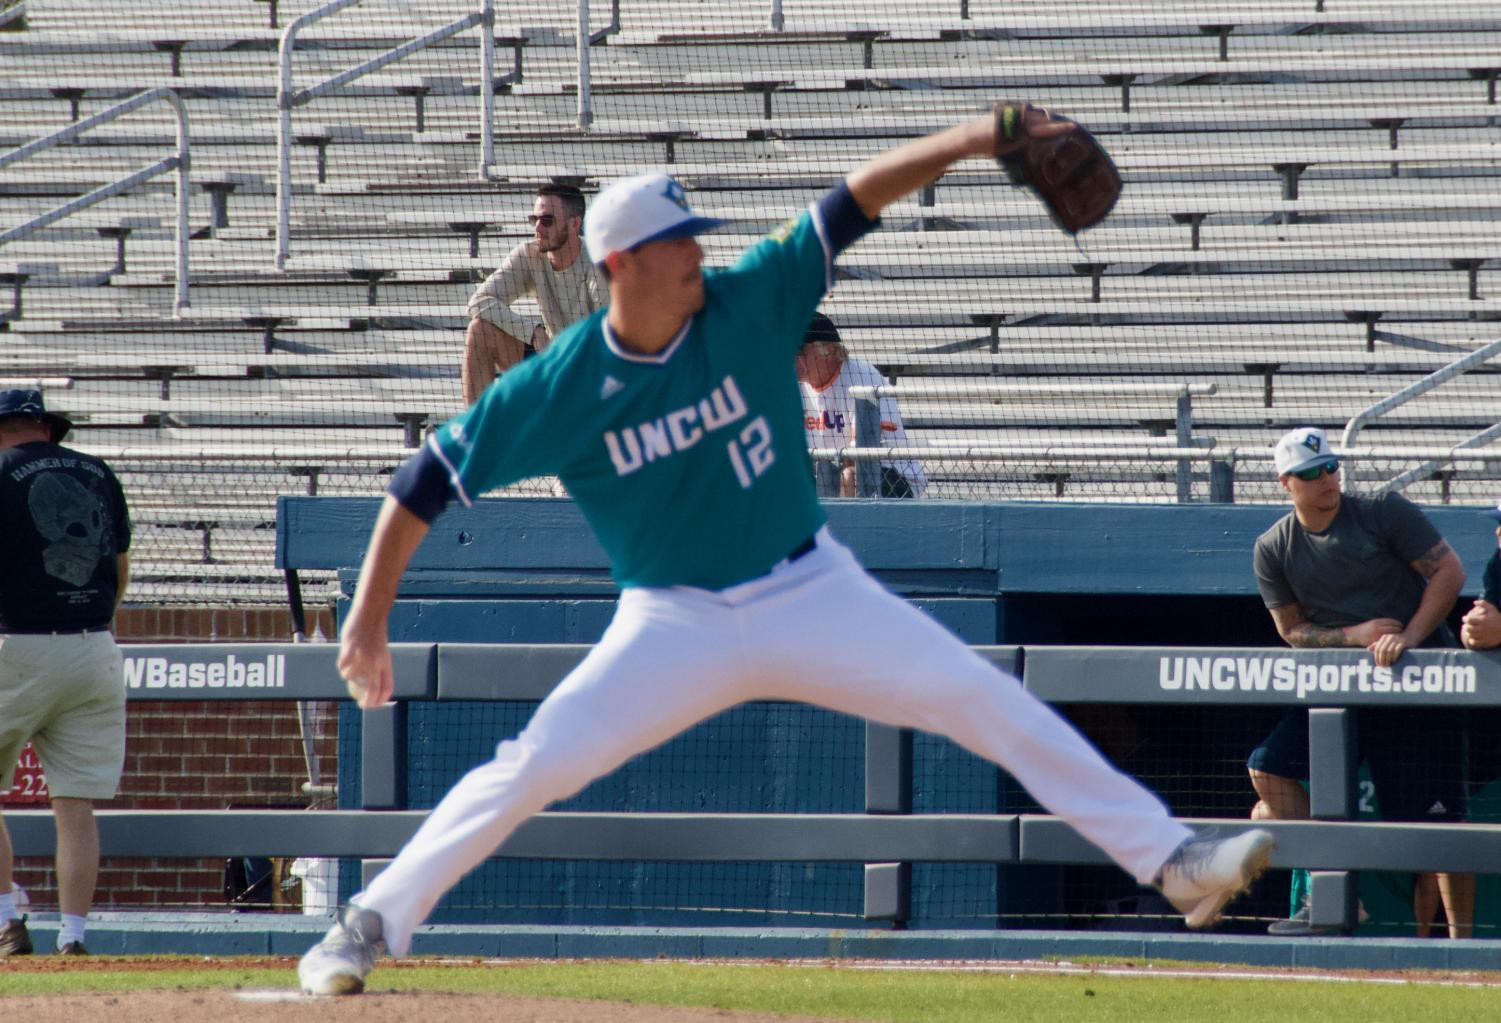 Luke Gesell (12) pitches during UNCW's season opener against St. Joseph on Feb. 15, 2019 at Brooks Field.